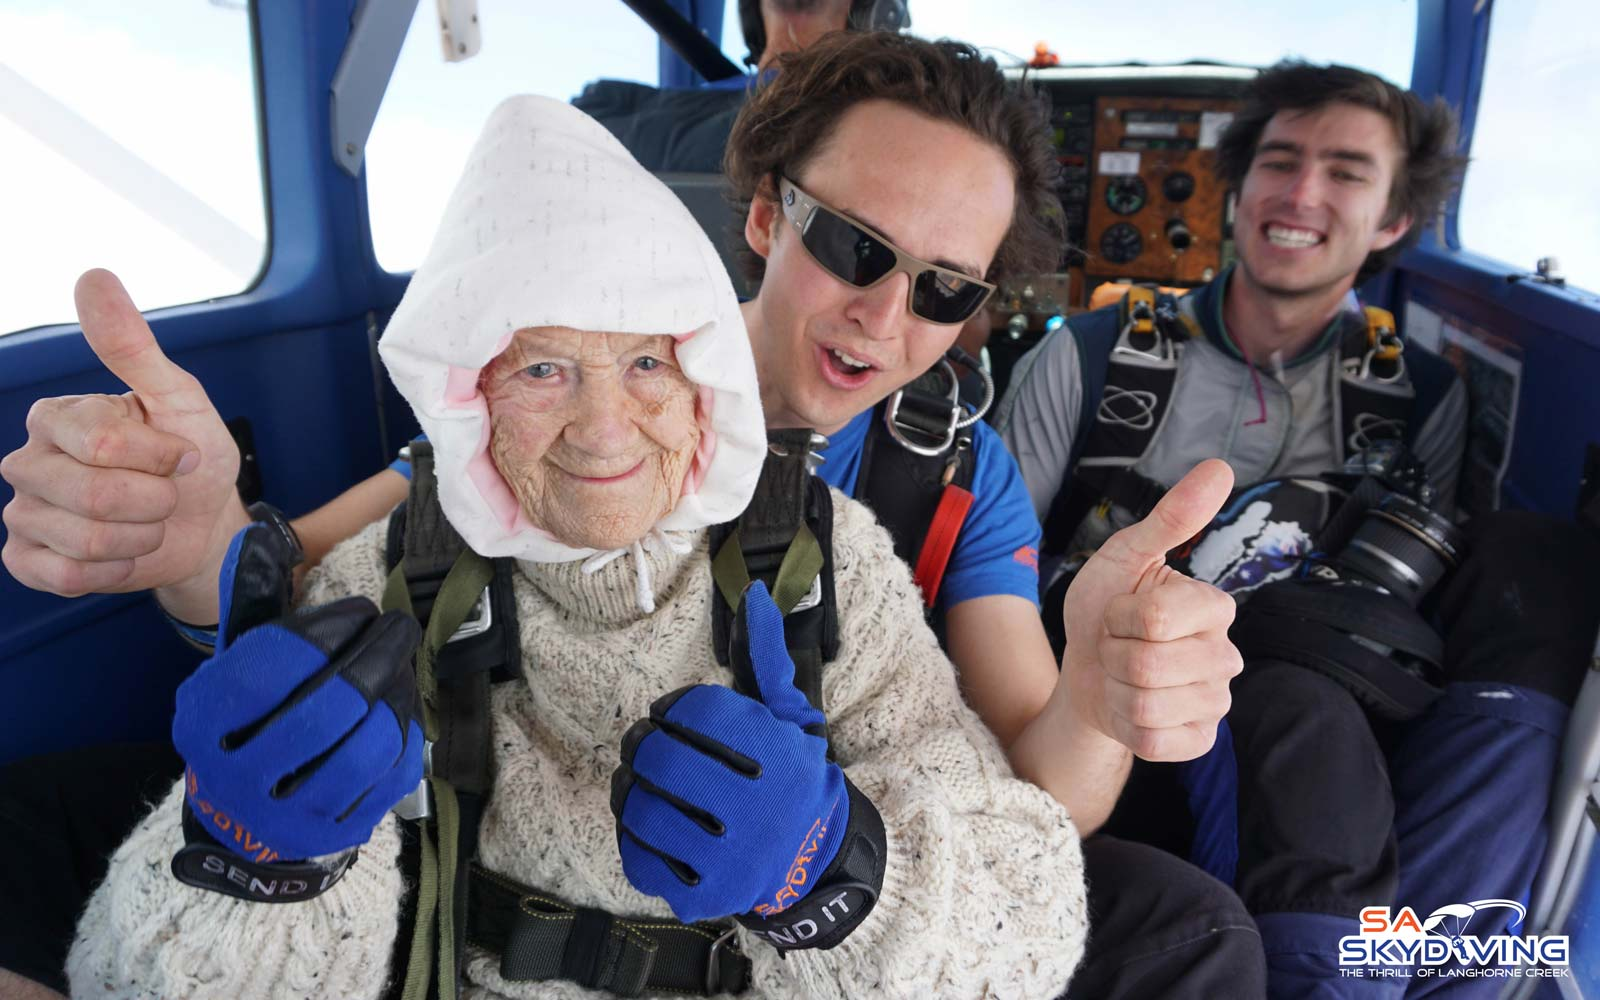 102-year-old Australian Woman Becomes the Oldest Skydiver in the World